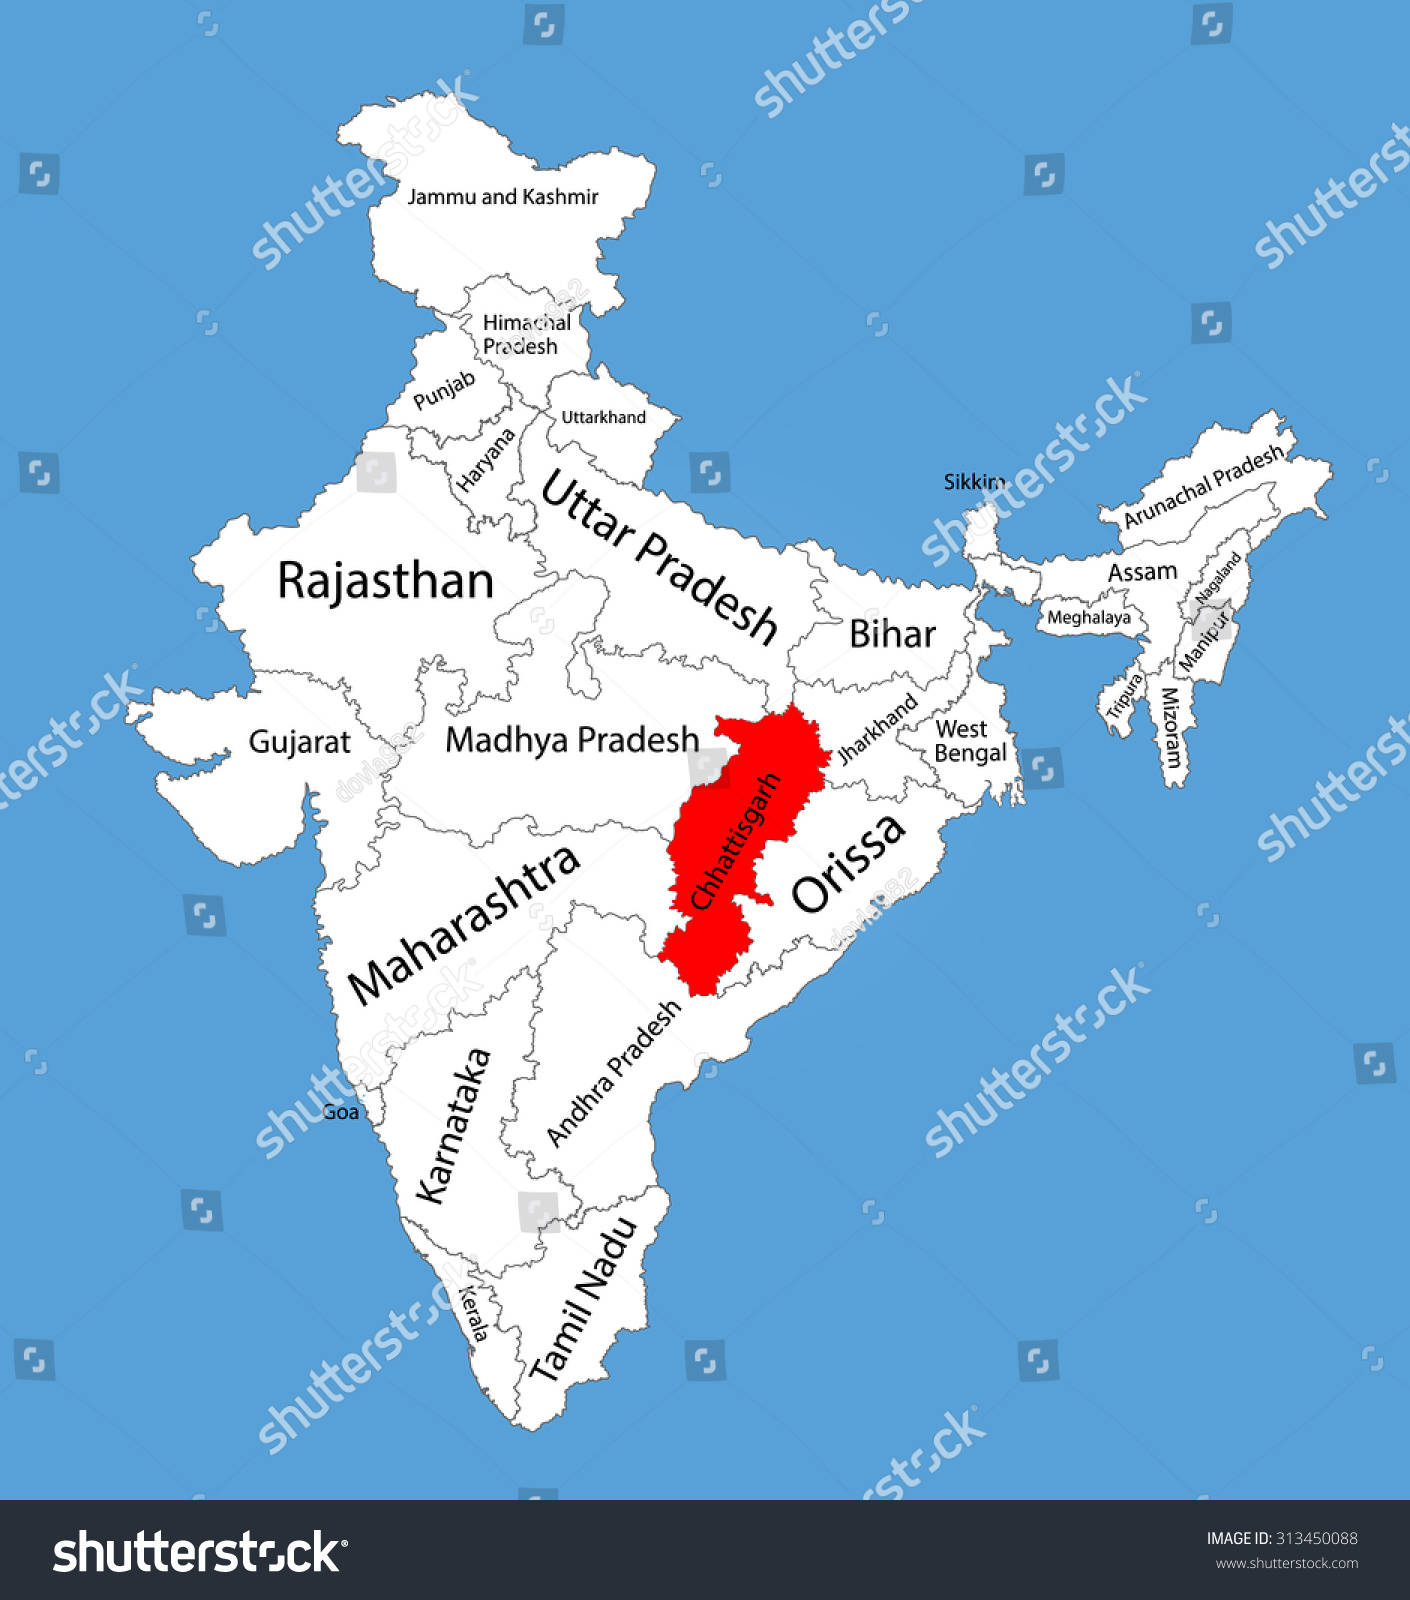 chhattisgarh chhattisgarh state india vector map stock vector